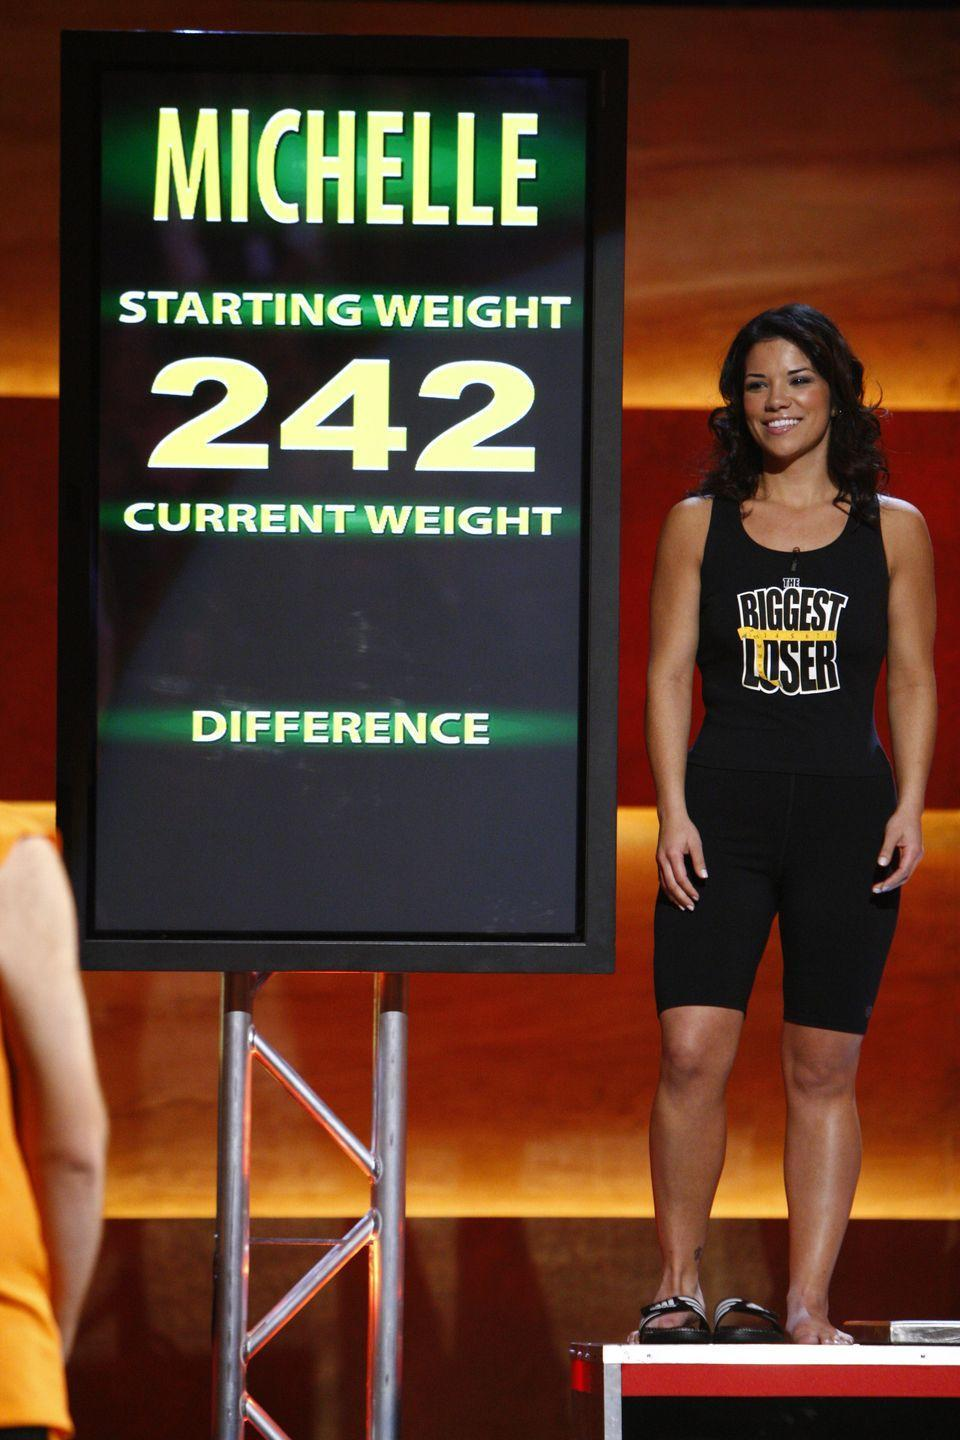 <p>Michelle weighed 242 pounds at the beginning of the show and ended up at 132 pounds. That was enough to help her clinch the season 6 <em>The Biggest Loser</em> title.</p>